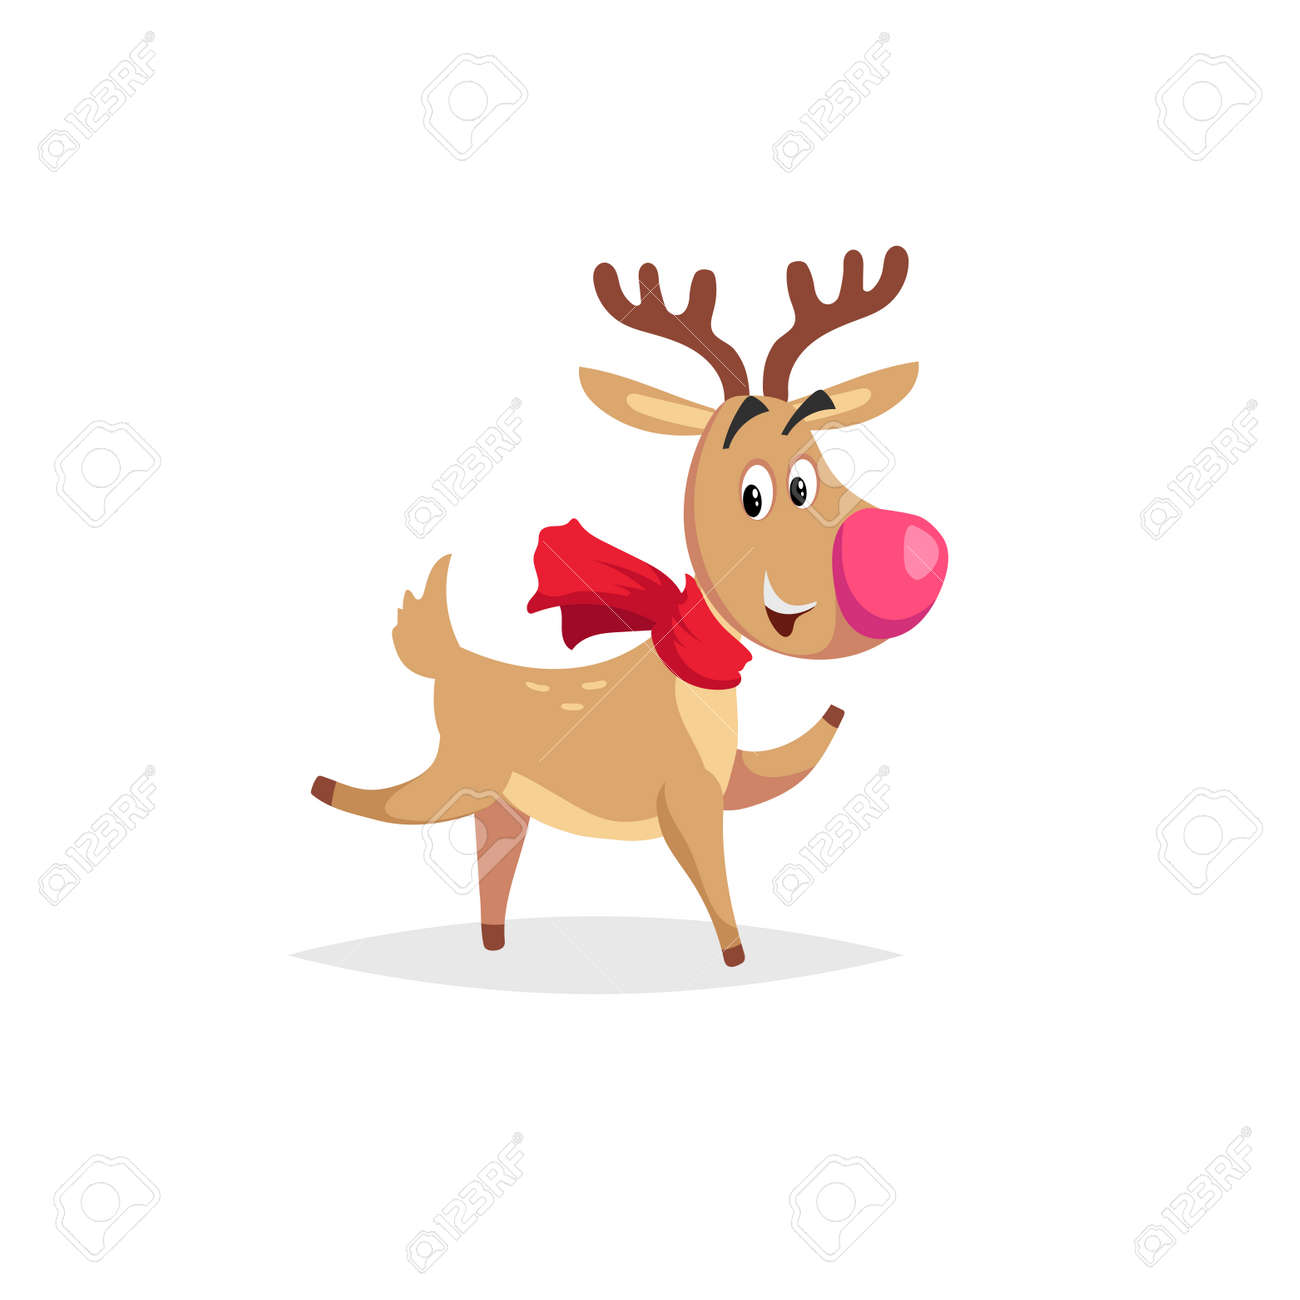 cartoon dancing or running reindeer with scarf and big red nose rh 123rf com New Year Horn Clip Art New Year's Blower Clip Art